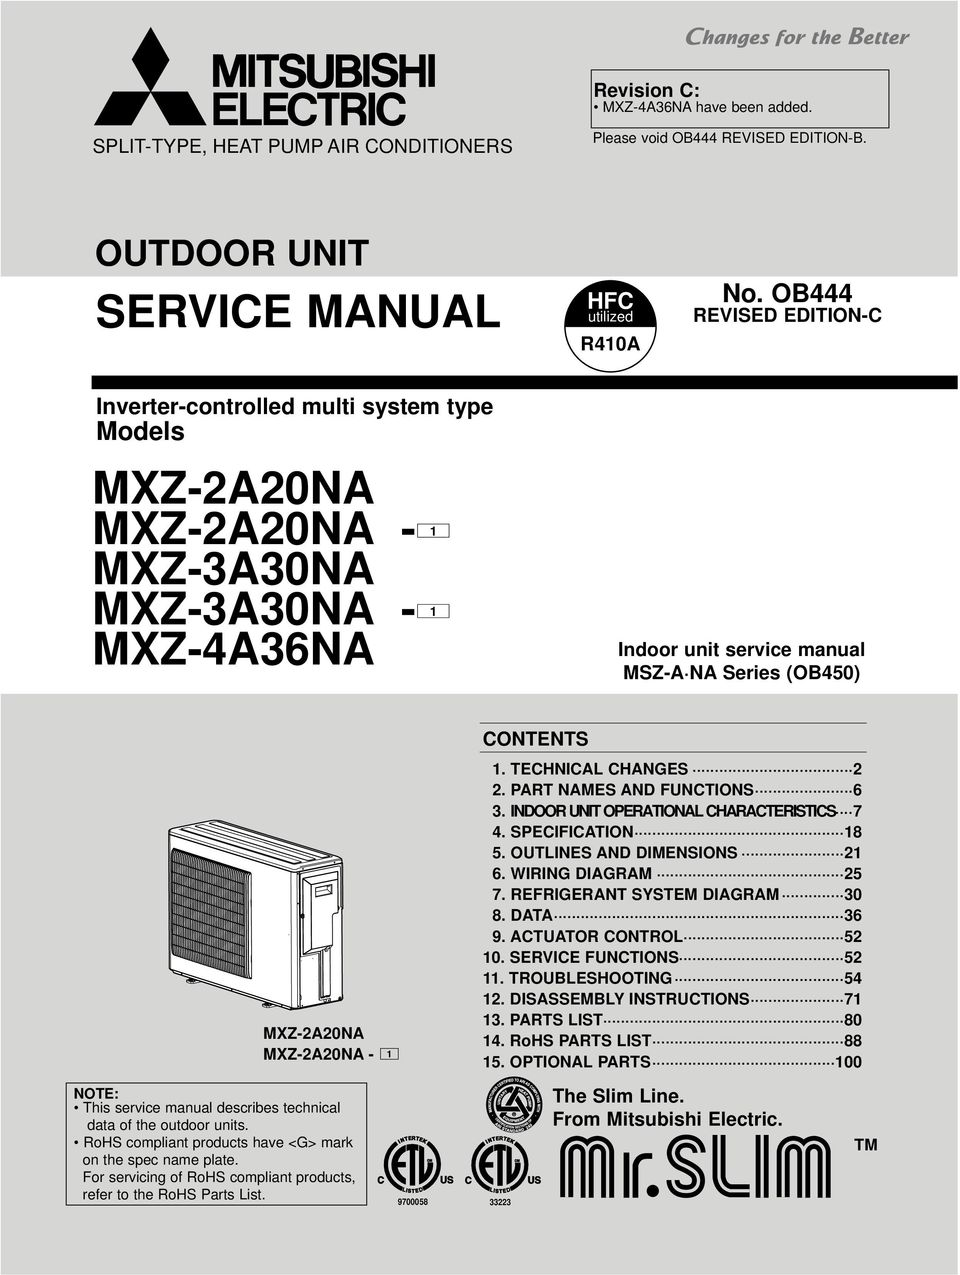 medium resolution of mxz a0na technical chanes part names and functions 6 3 indoor